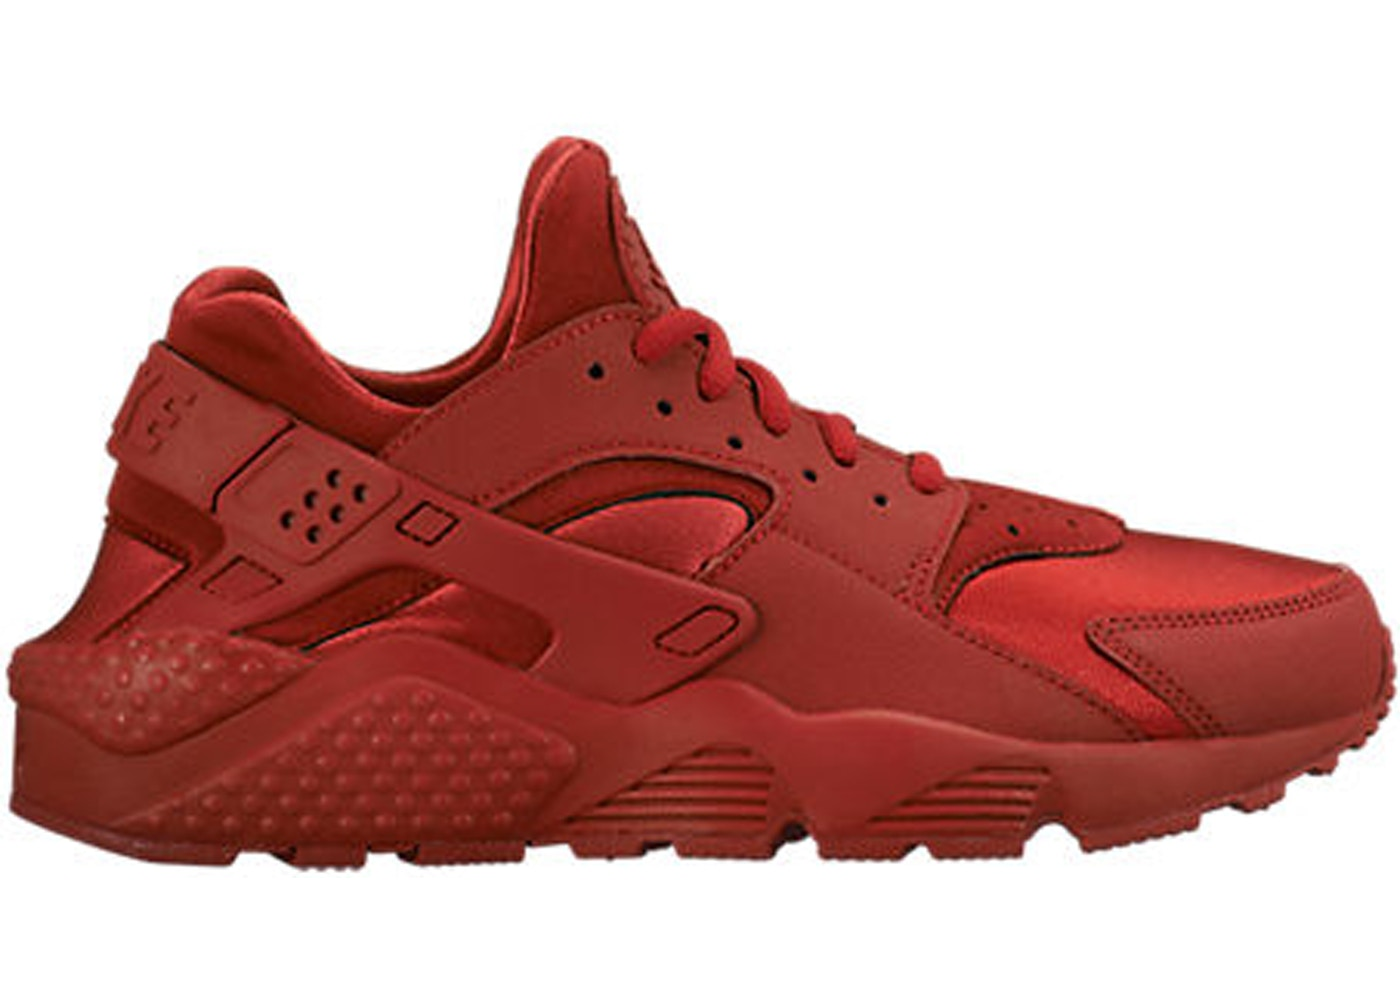 sale retailer 4af1f 14cf4 Buy Nike Other Running Shoes   Deadstock Sneakers